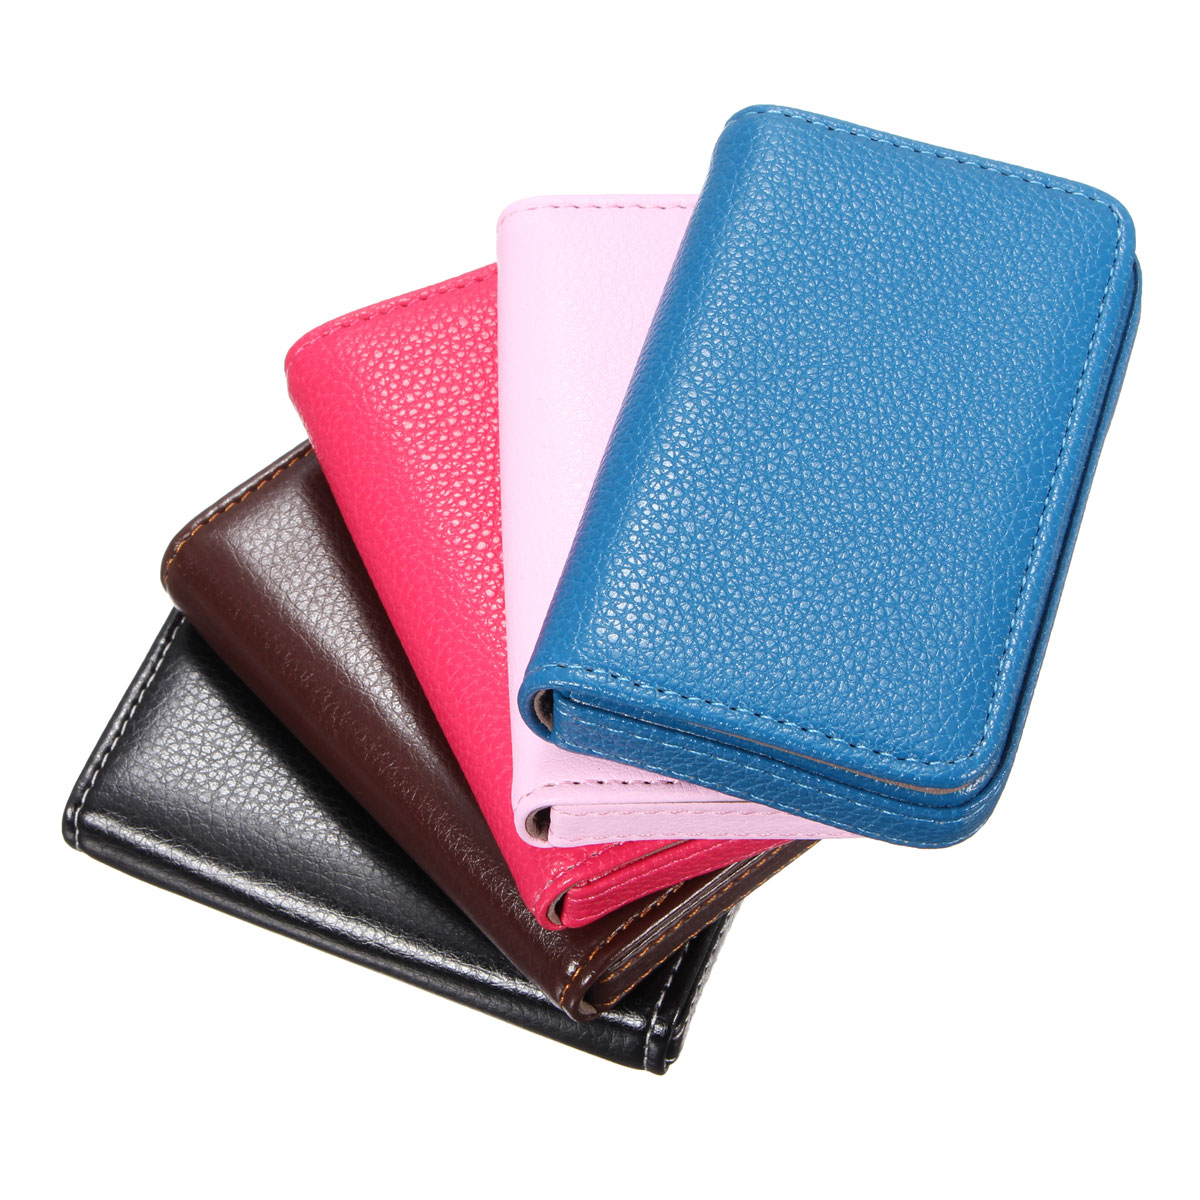 new pocket leather business credit id card holder wallet